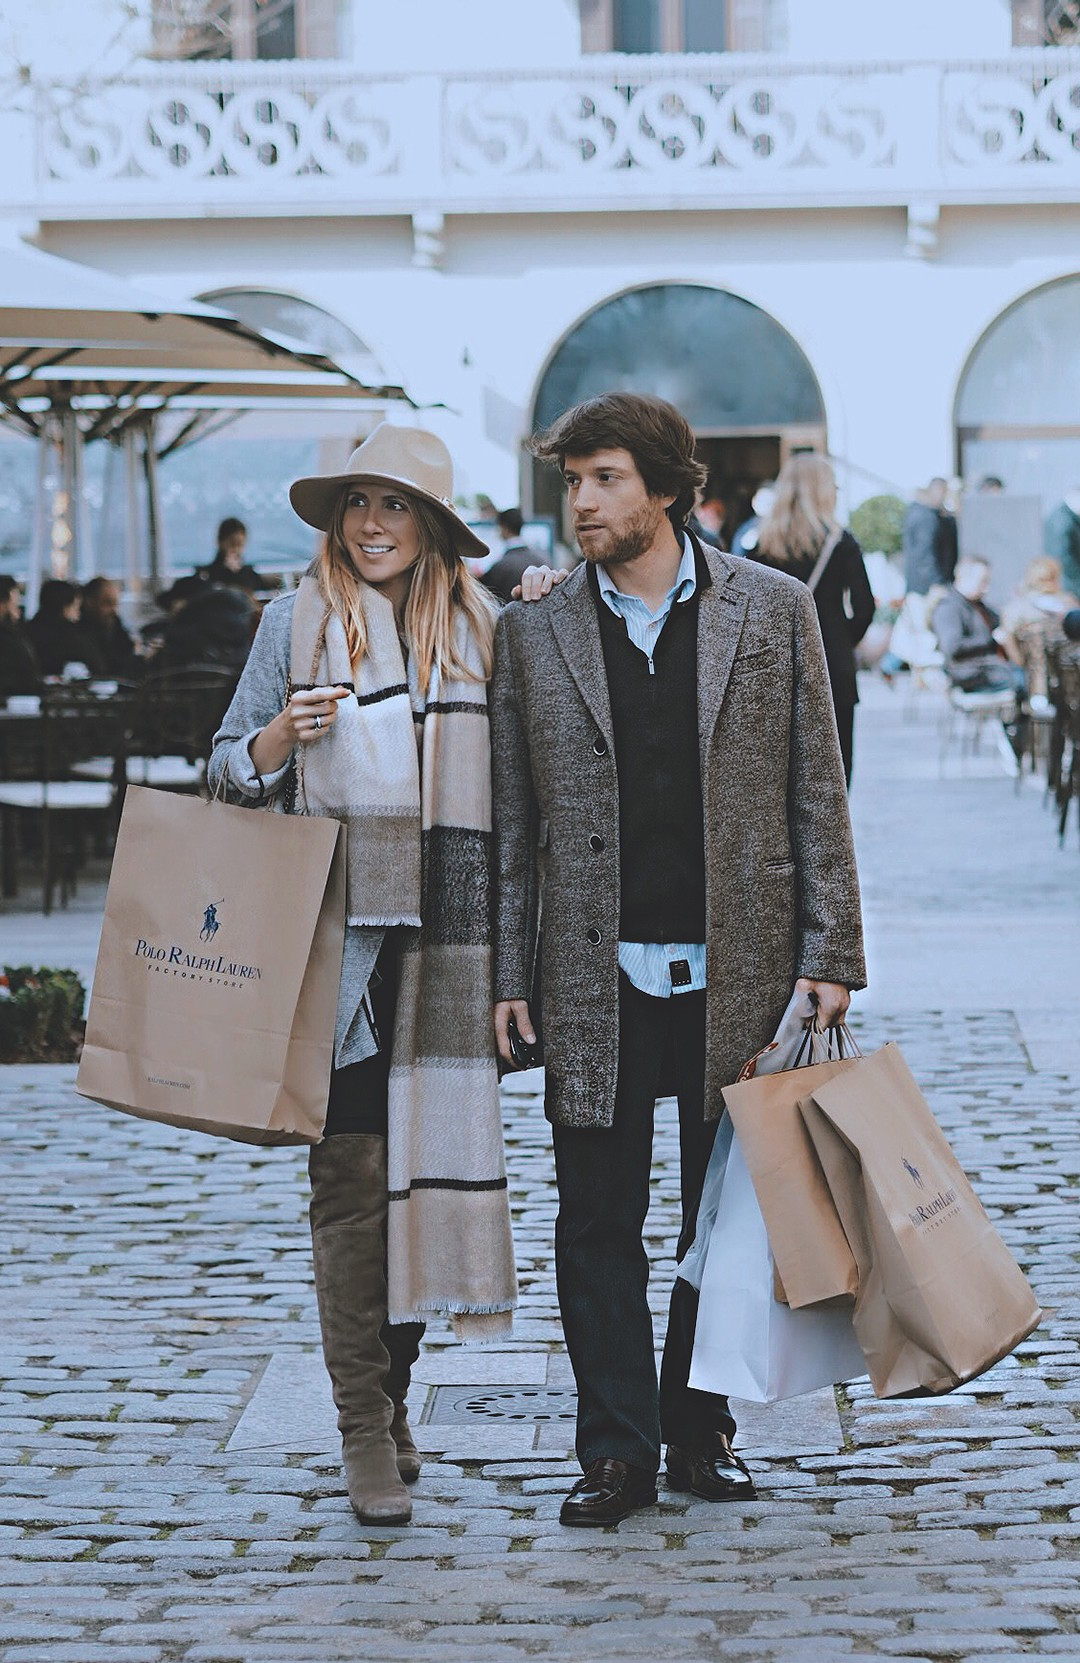 la-roca-village-shopping-day-couple-fashion-blog-barcelona-2017img_5182